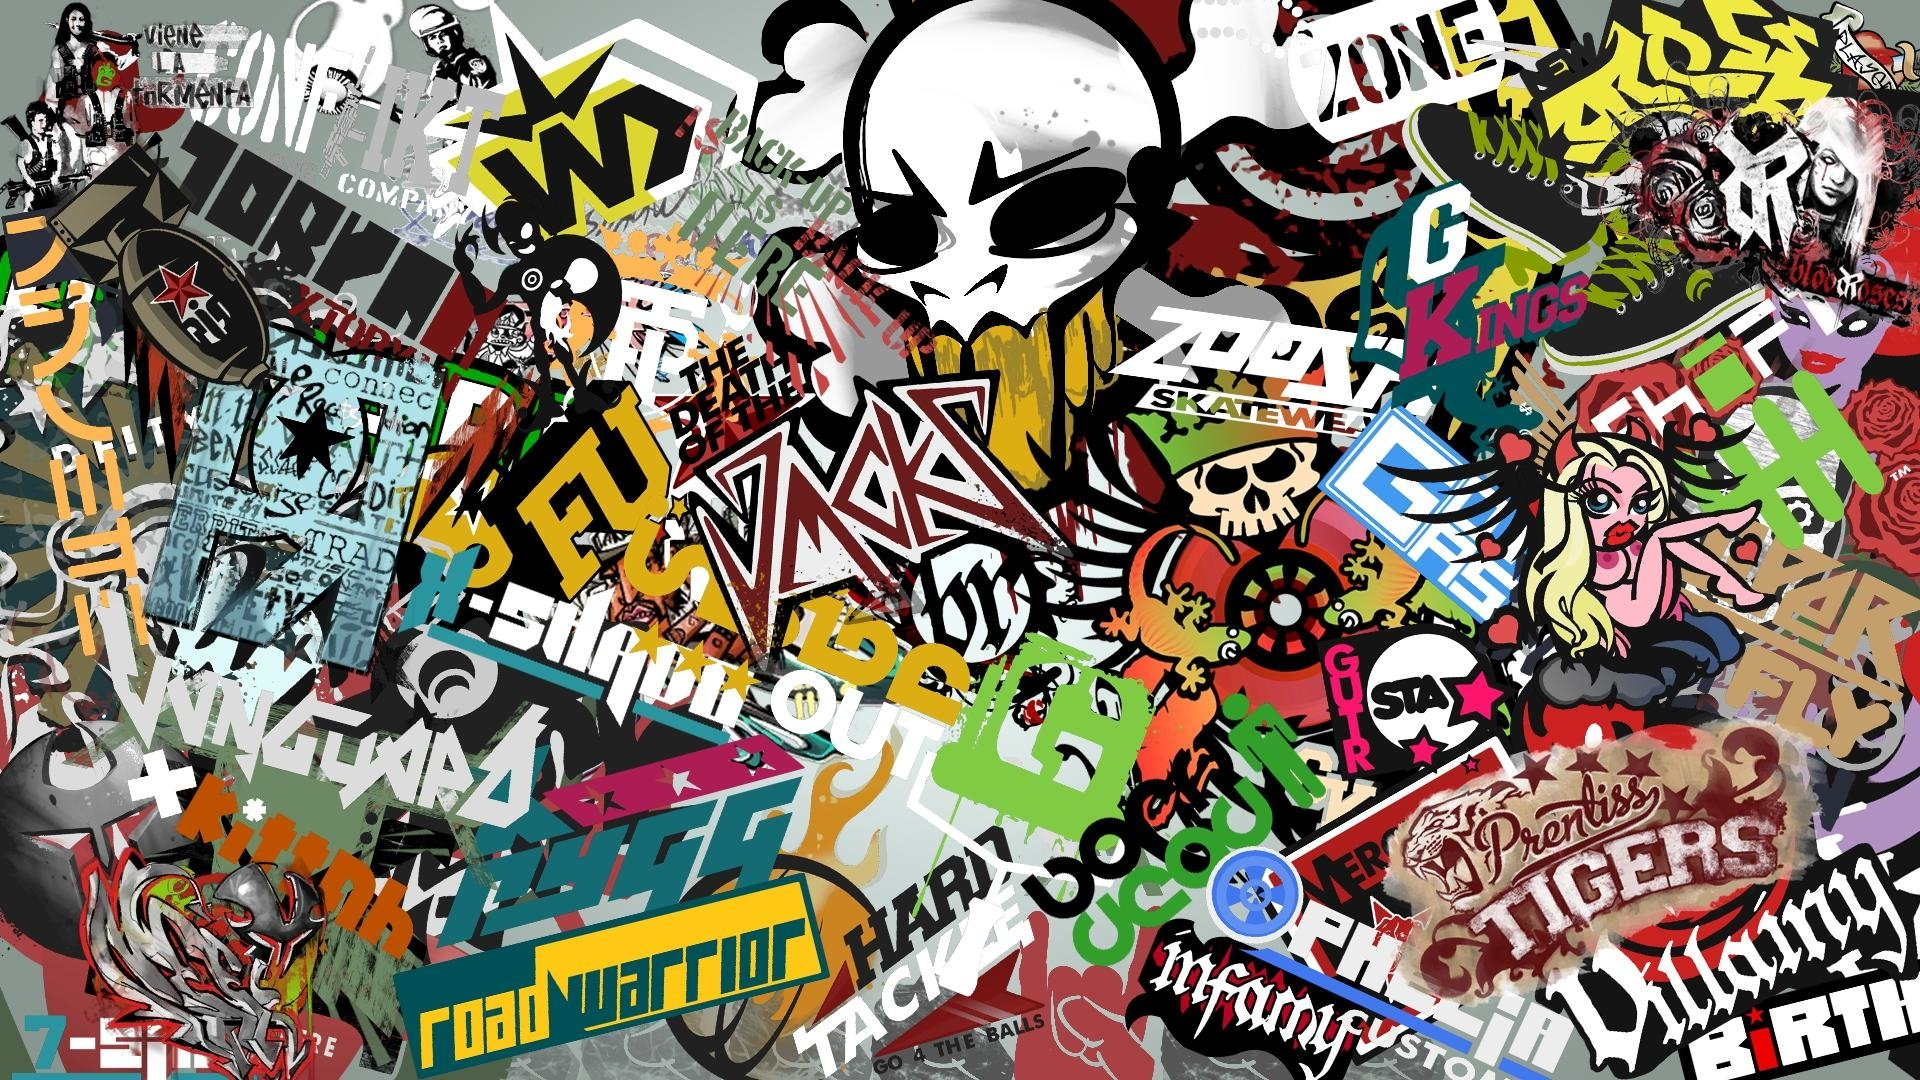 Hypebeast sticker wallpaper